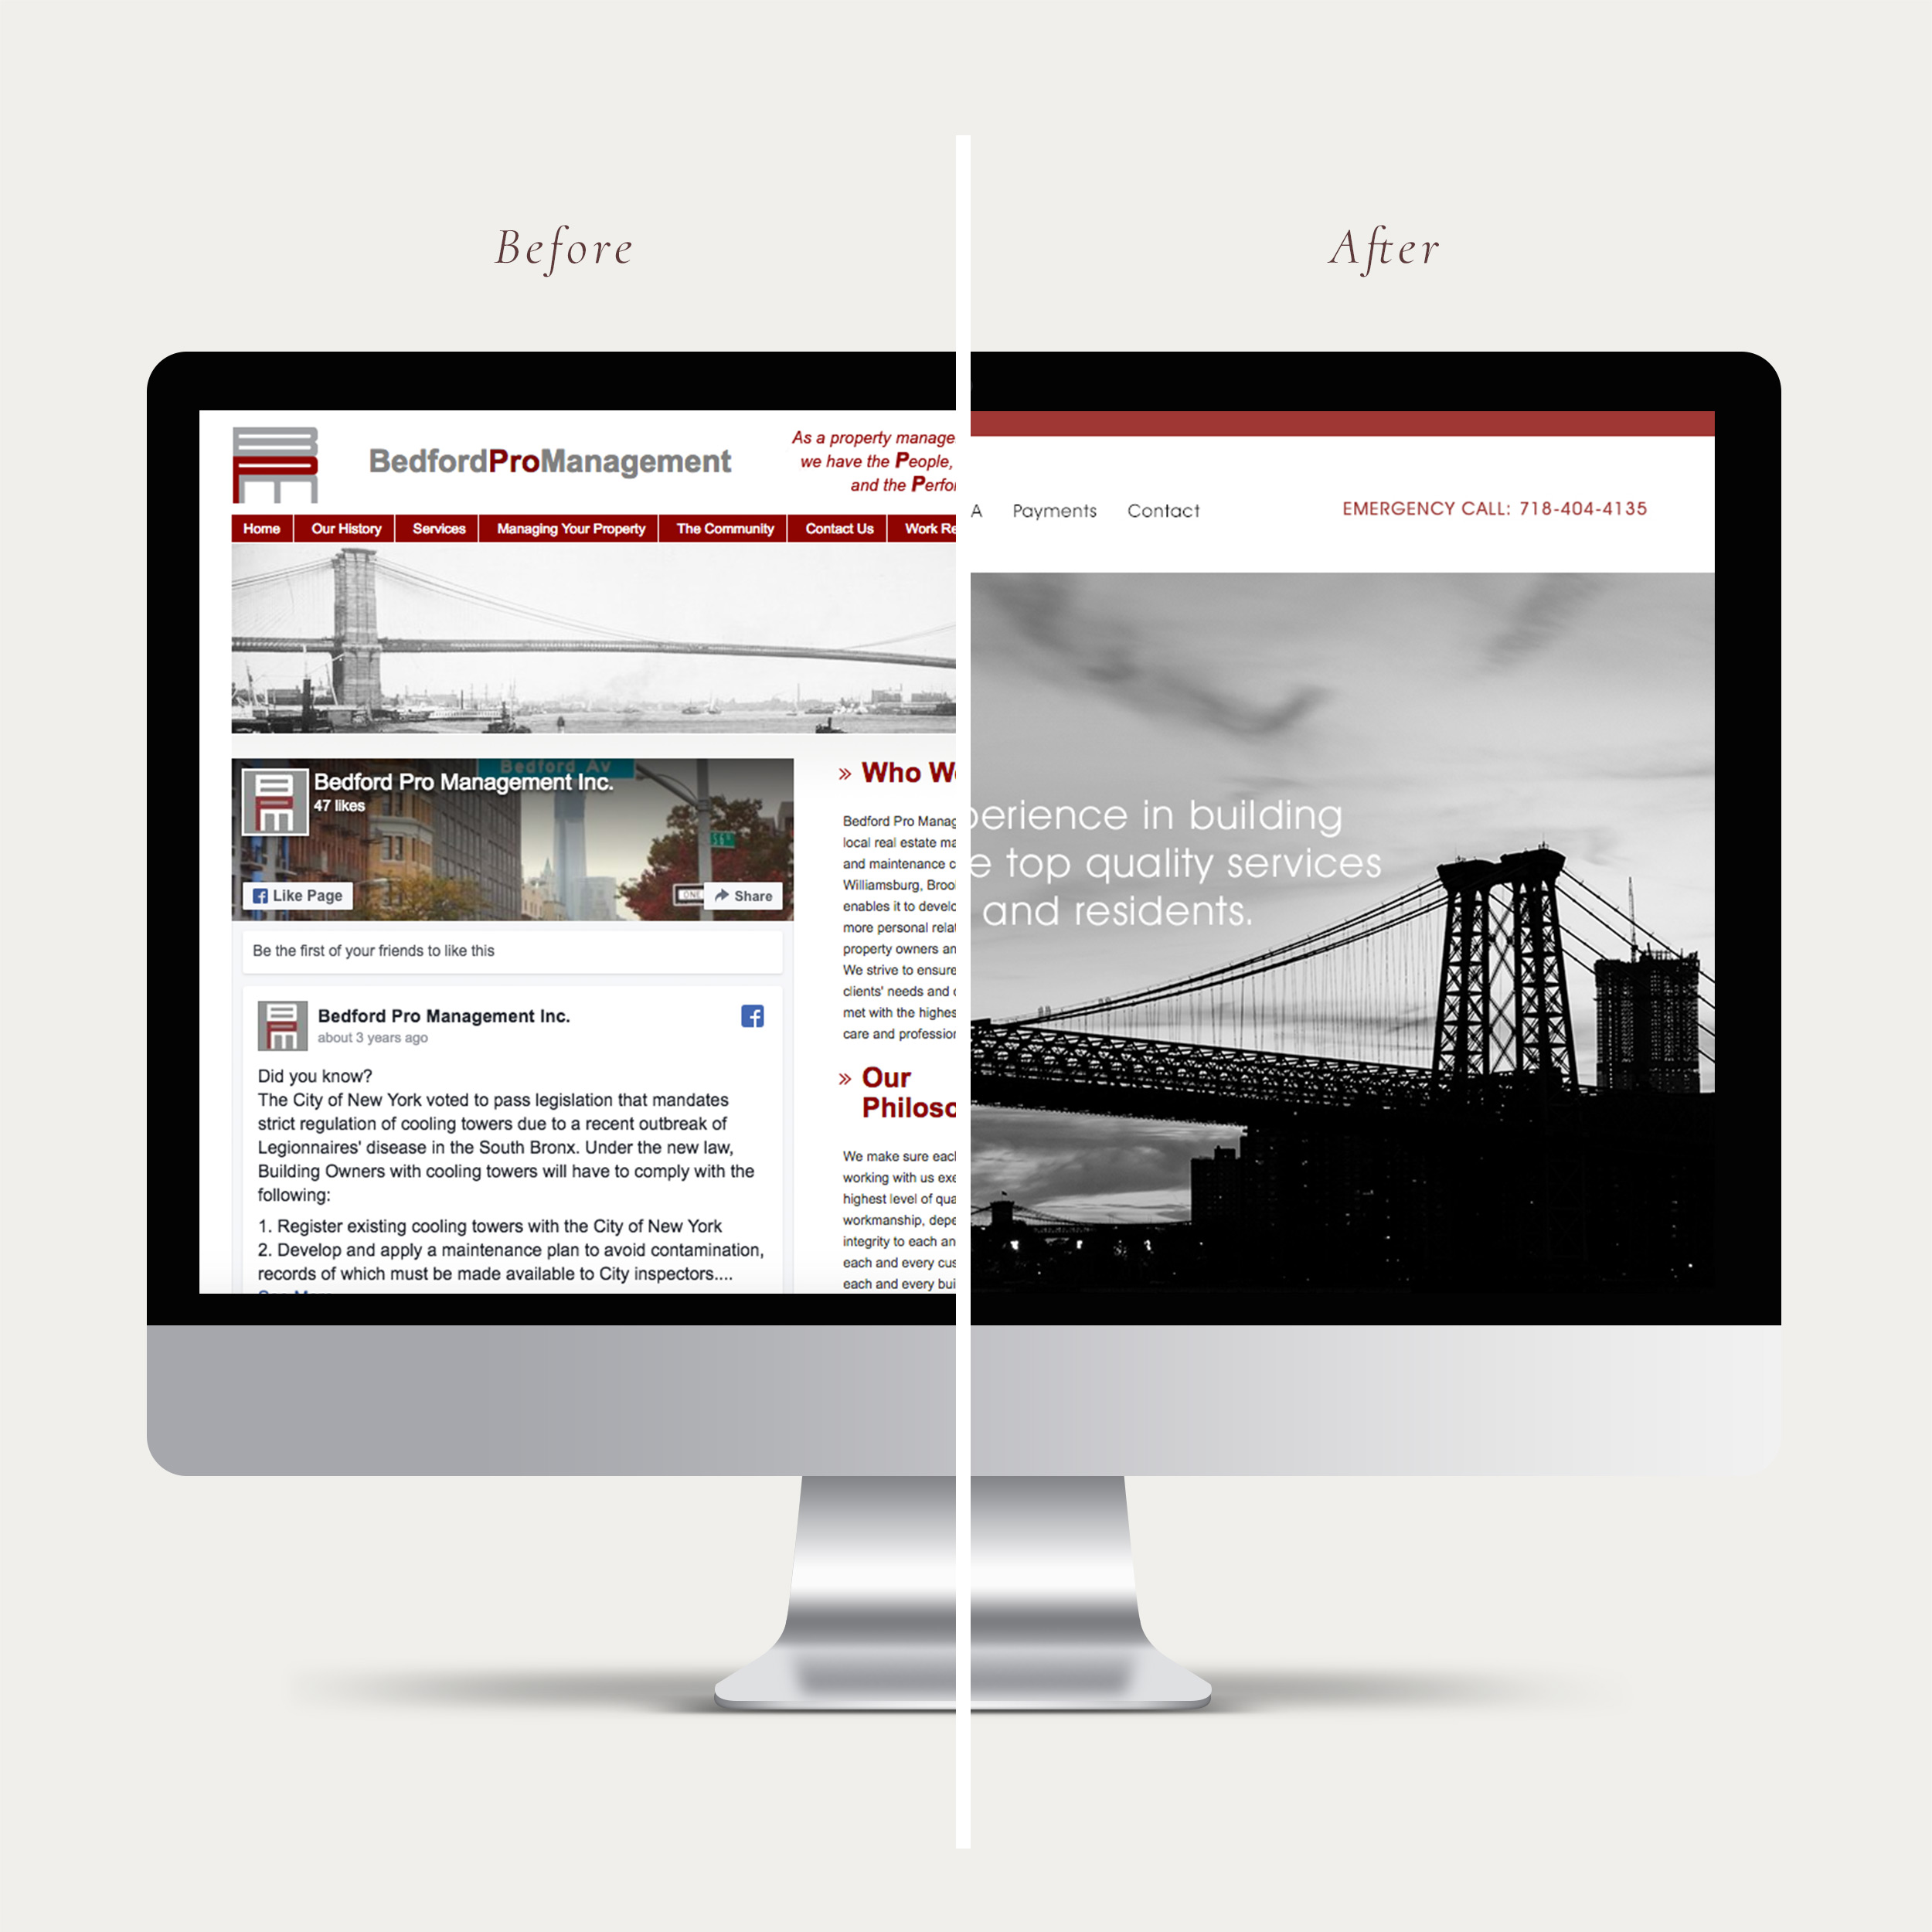 Before and after image of property management website